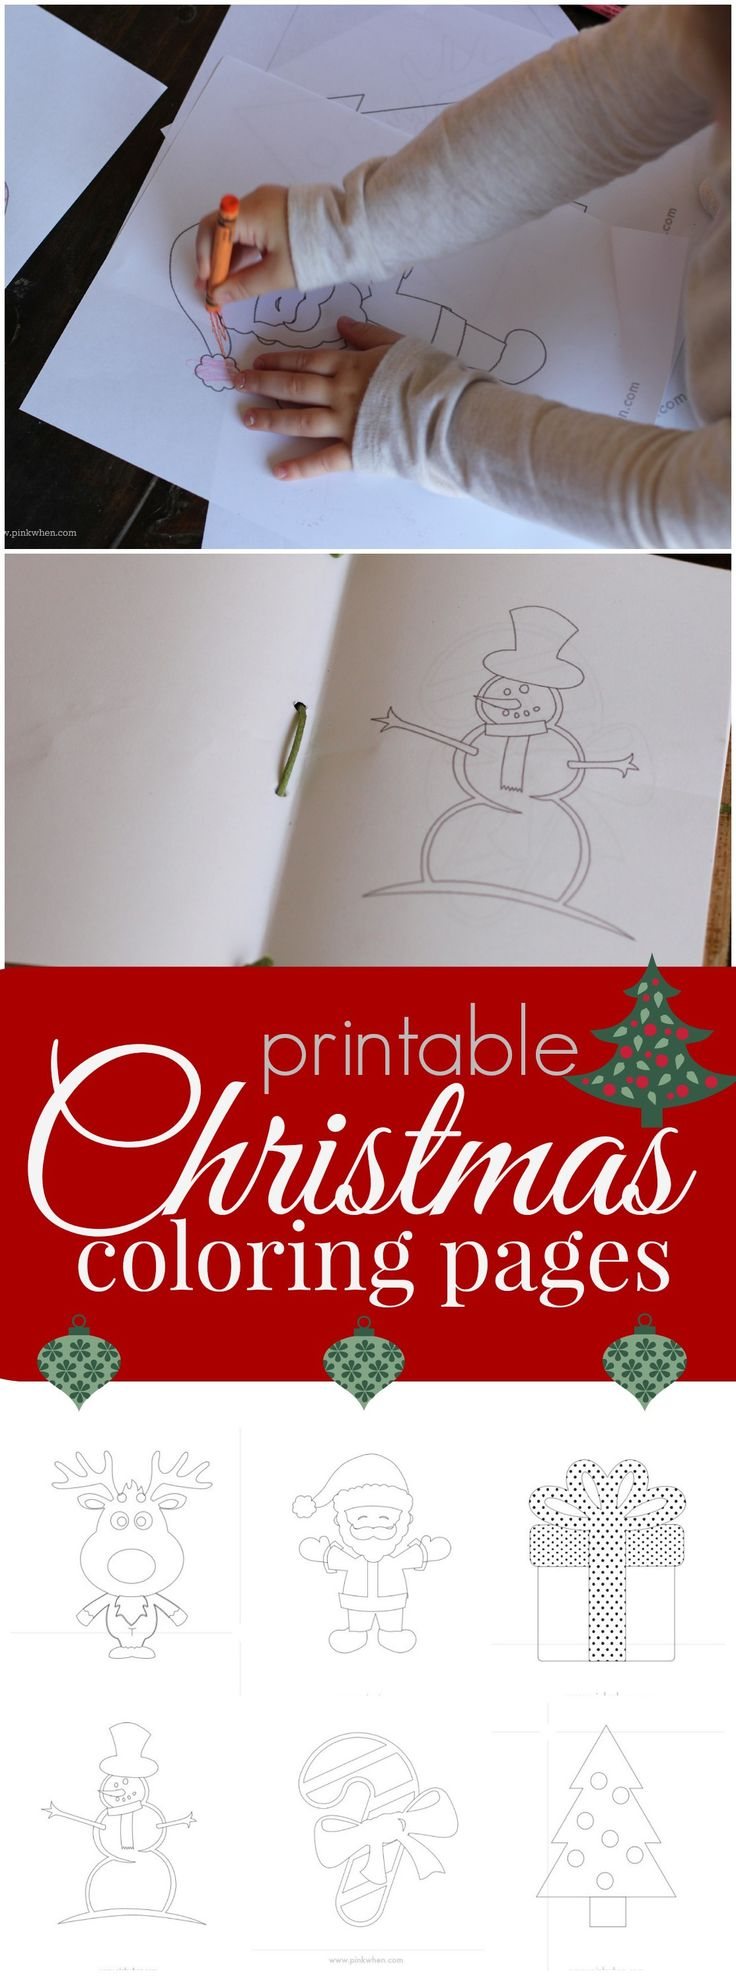 Six super cute and free Printable Christmas coloring pages. (There is also a tutorial on how to make a traveling coloring book with them!)